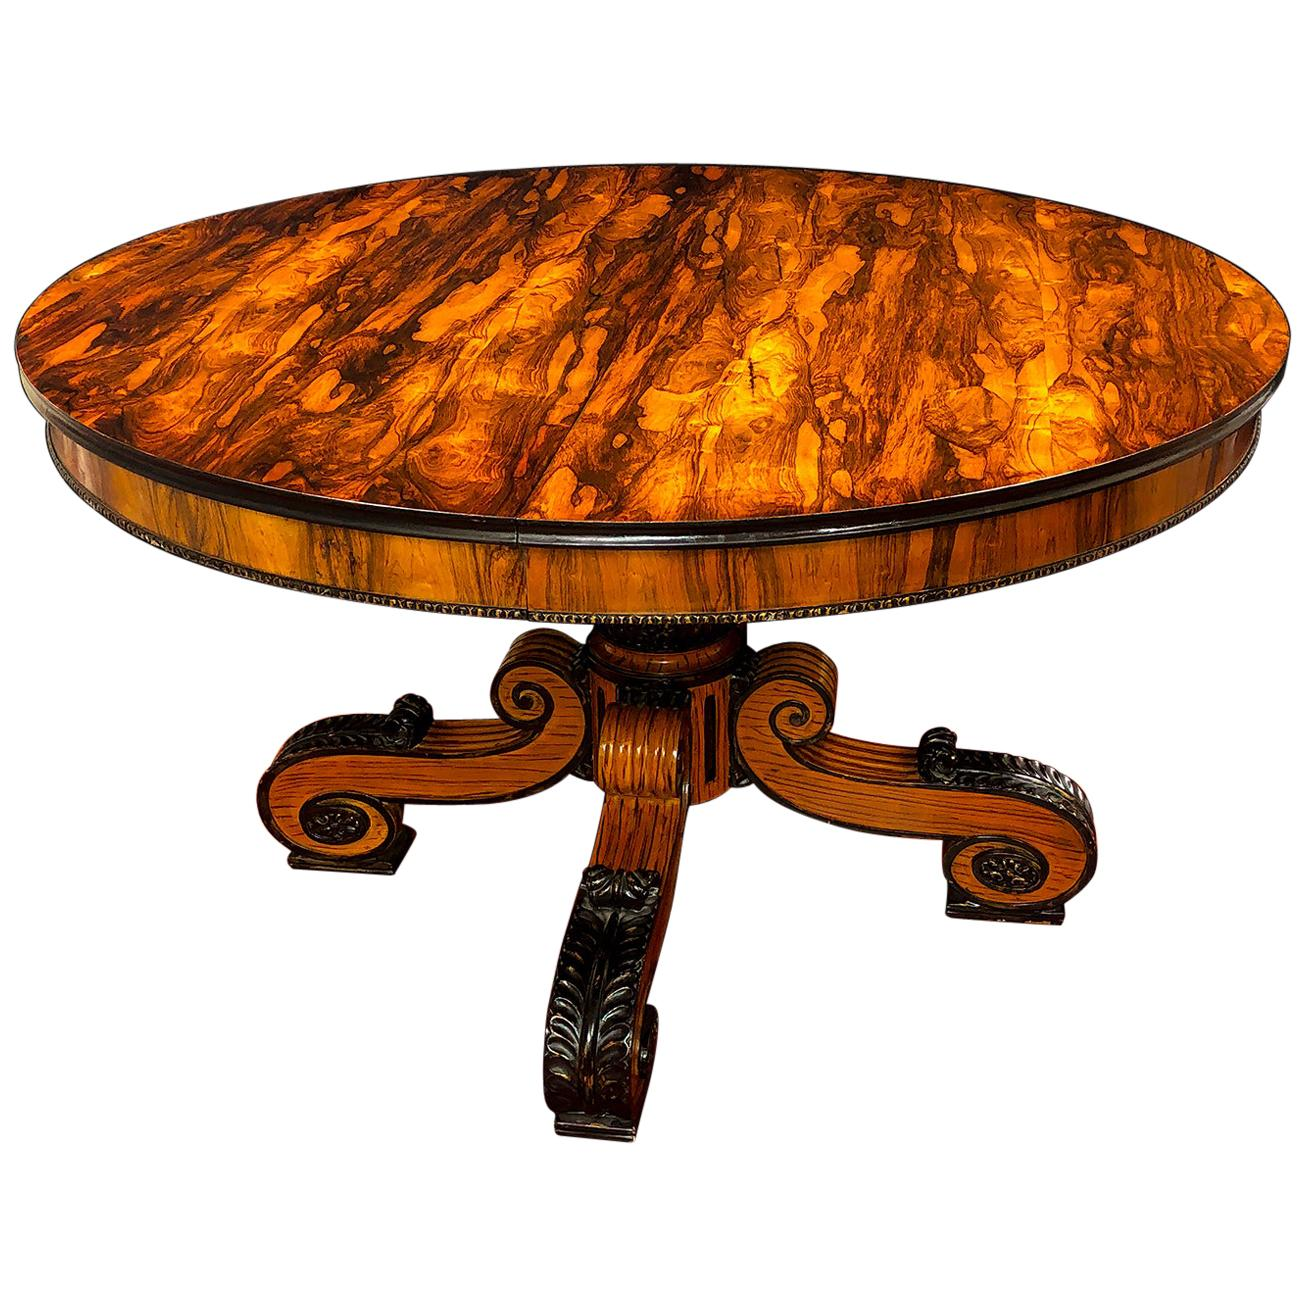 English Regency Rosewood Dining Table